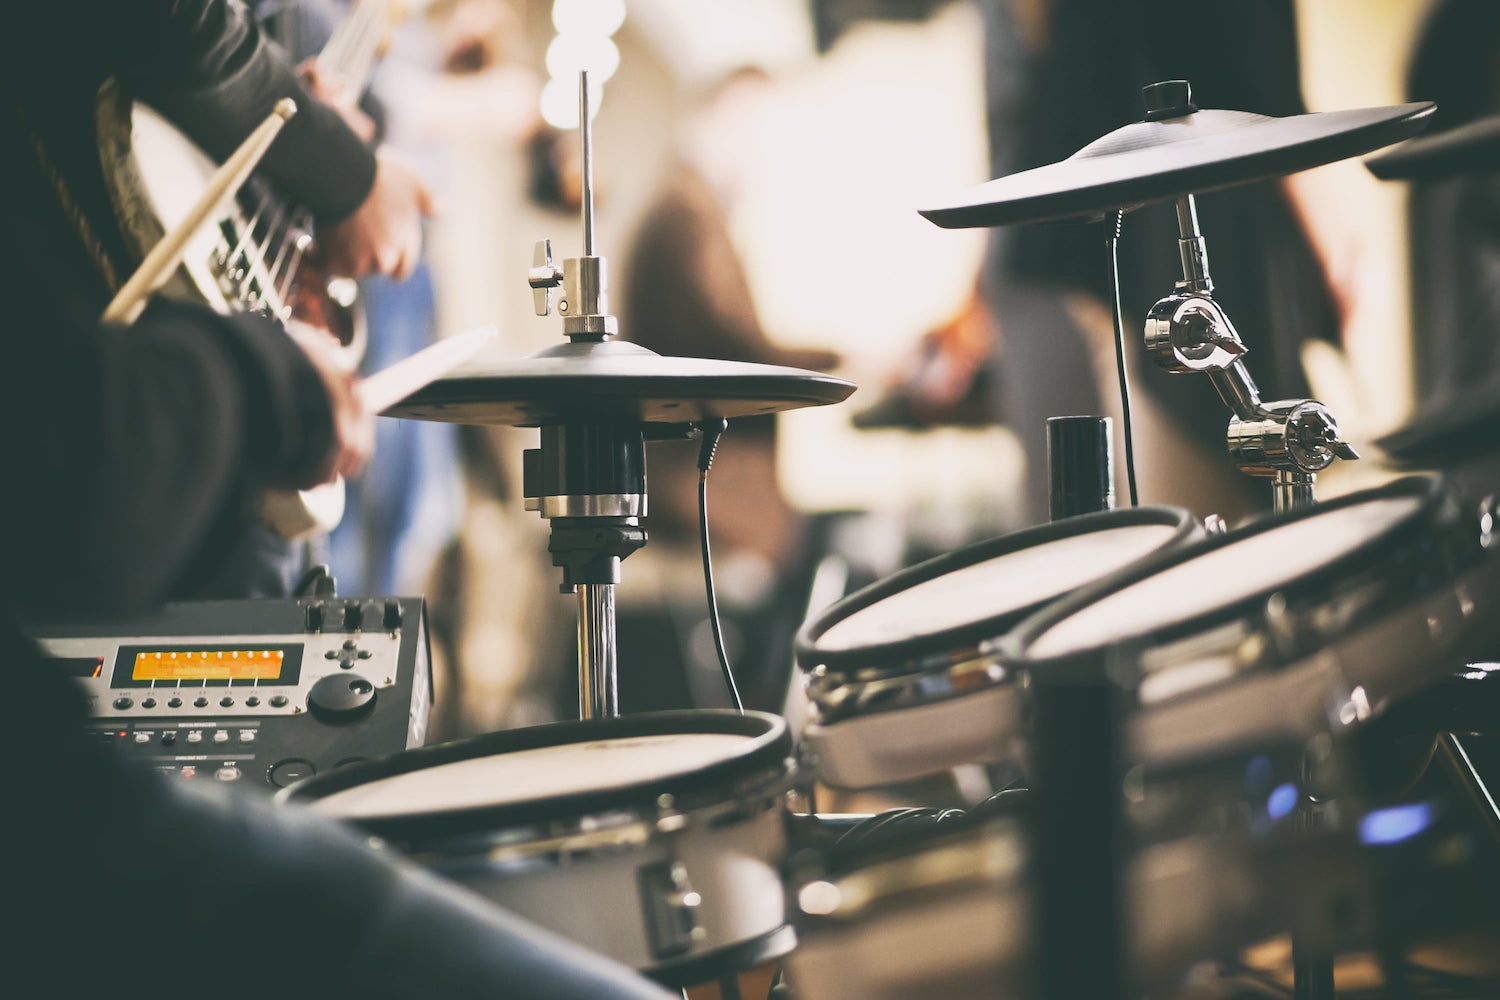 Drumming Program - 4 day beginner drumming workshopOne hour per day5 - 10 students per groupLesson books providedDrum stick & pad hire availableCost $87 per person